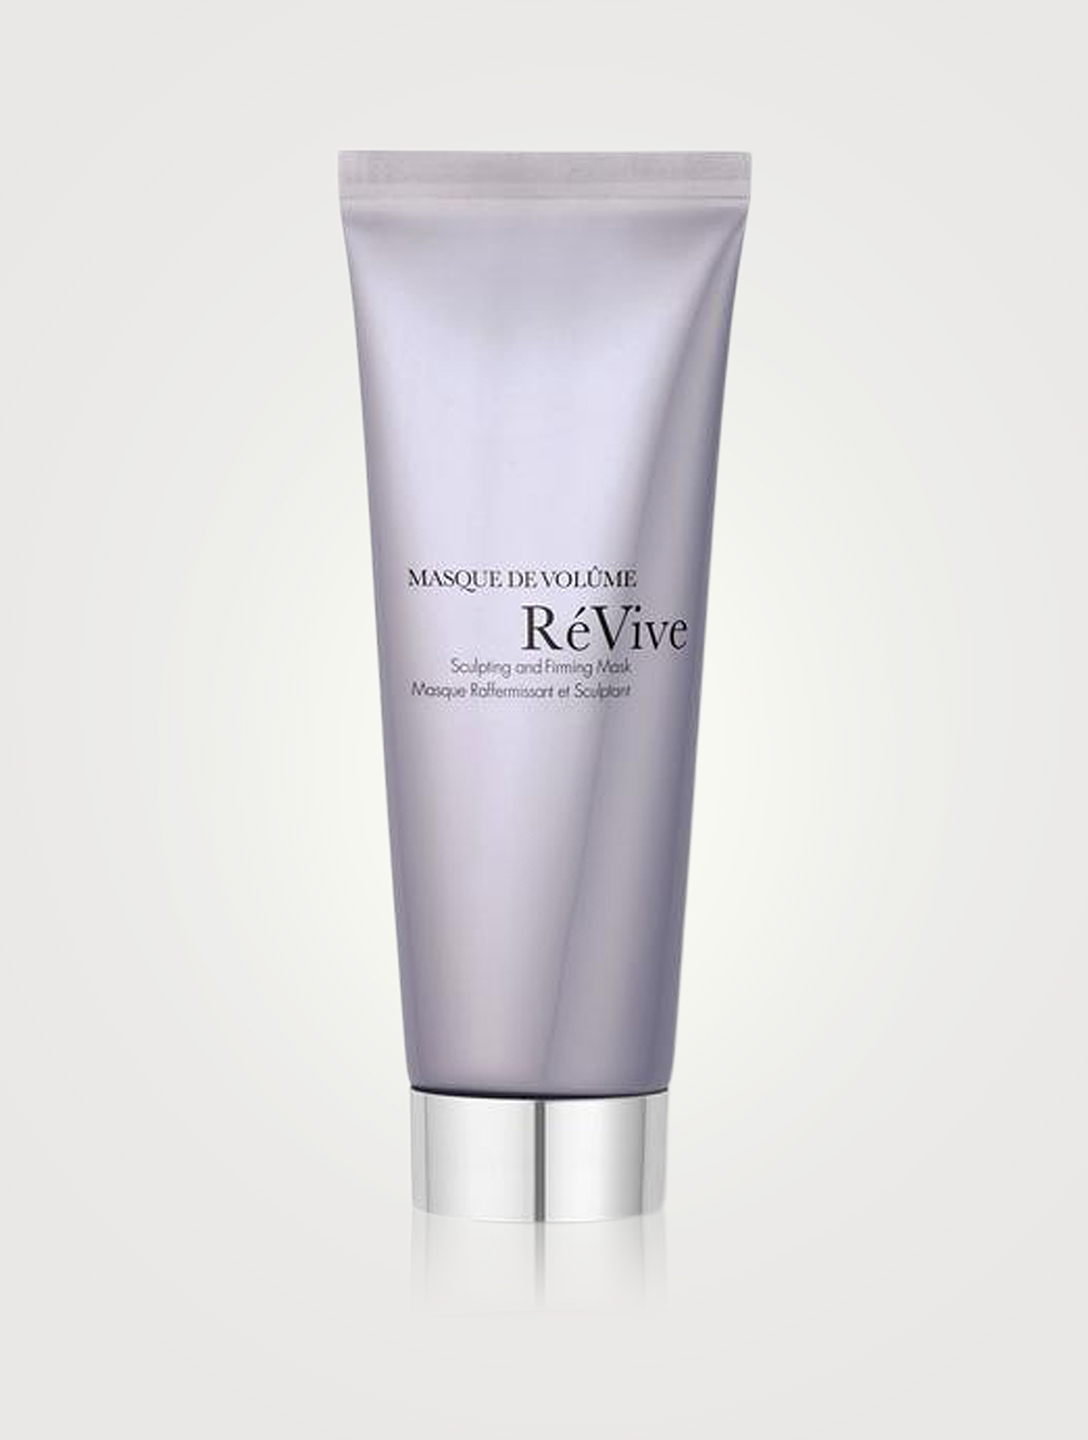 RÉVIVE Masque de Volume Sculpting and Firming Mask Beauty